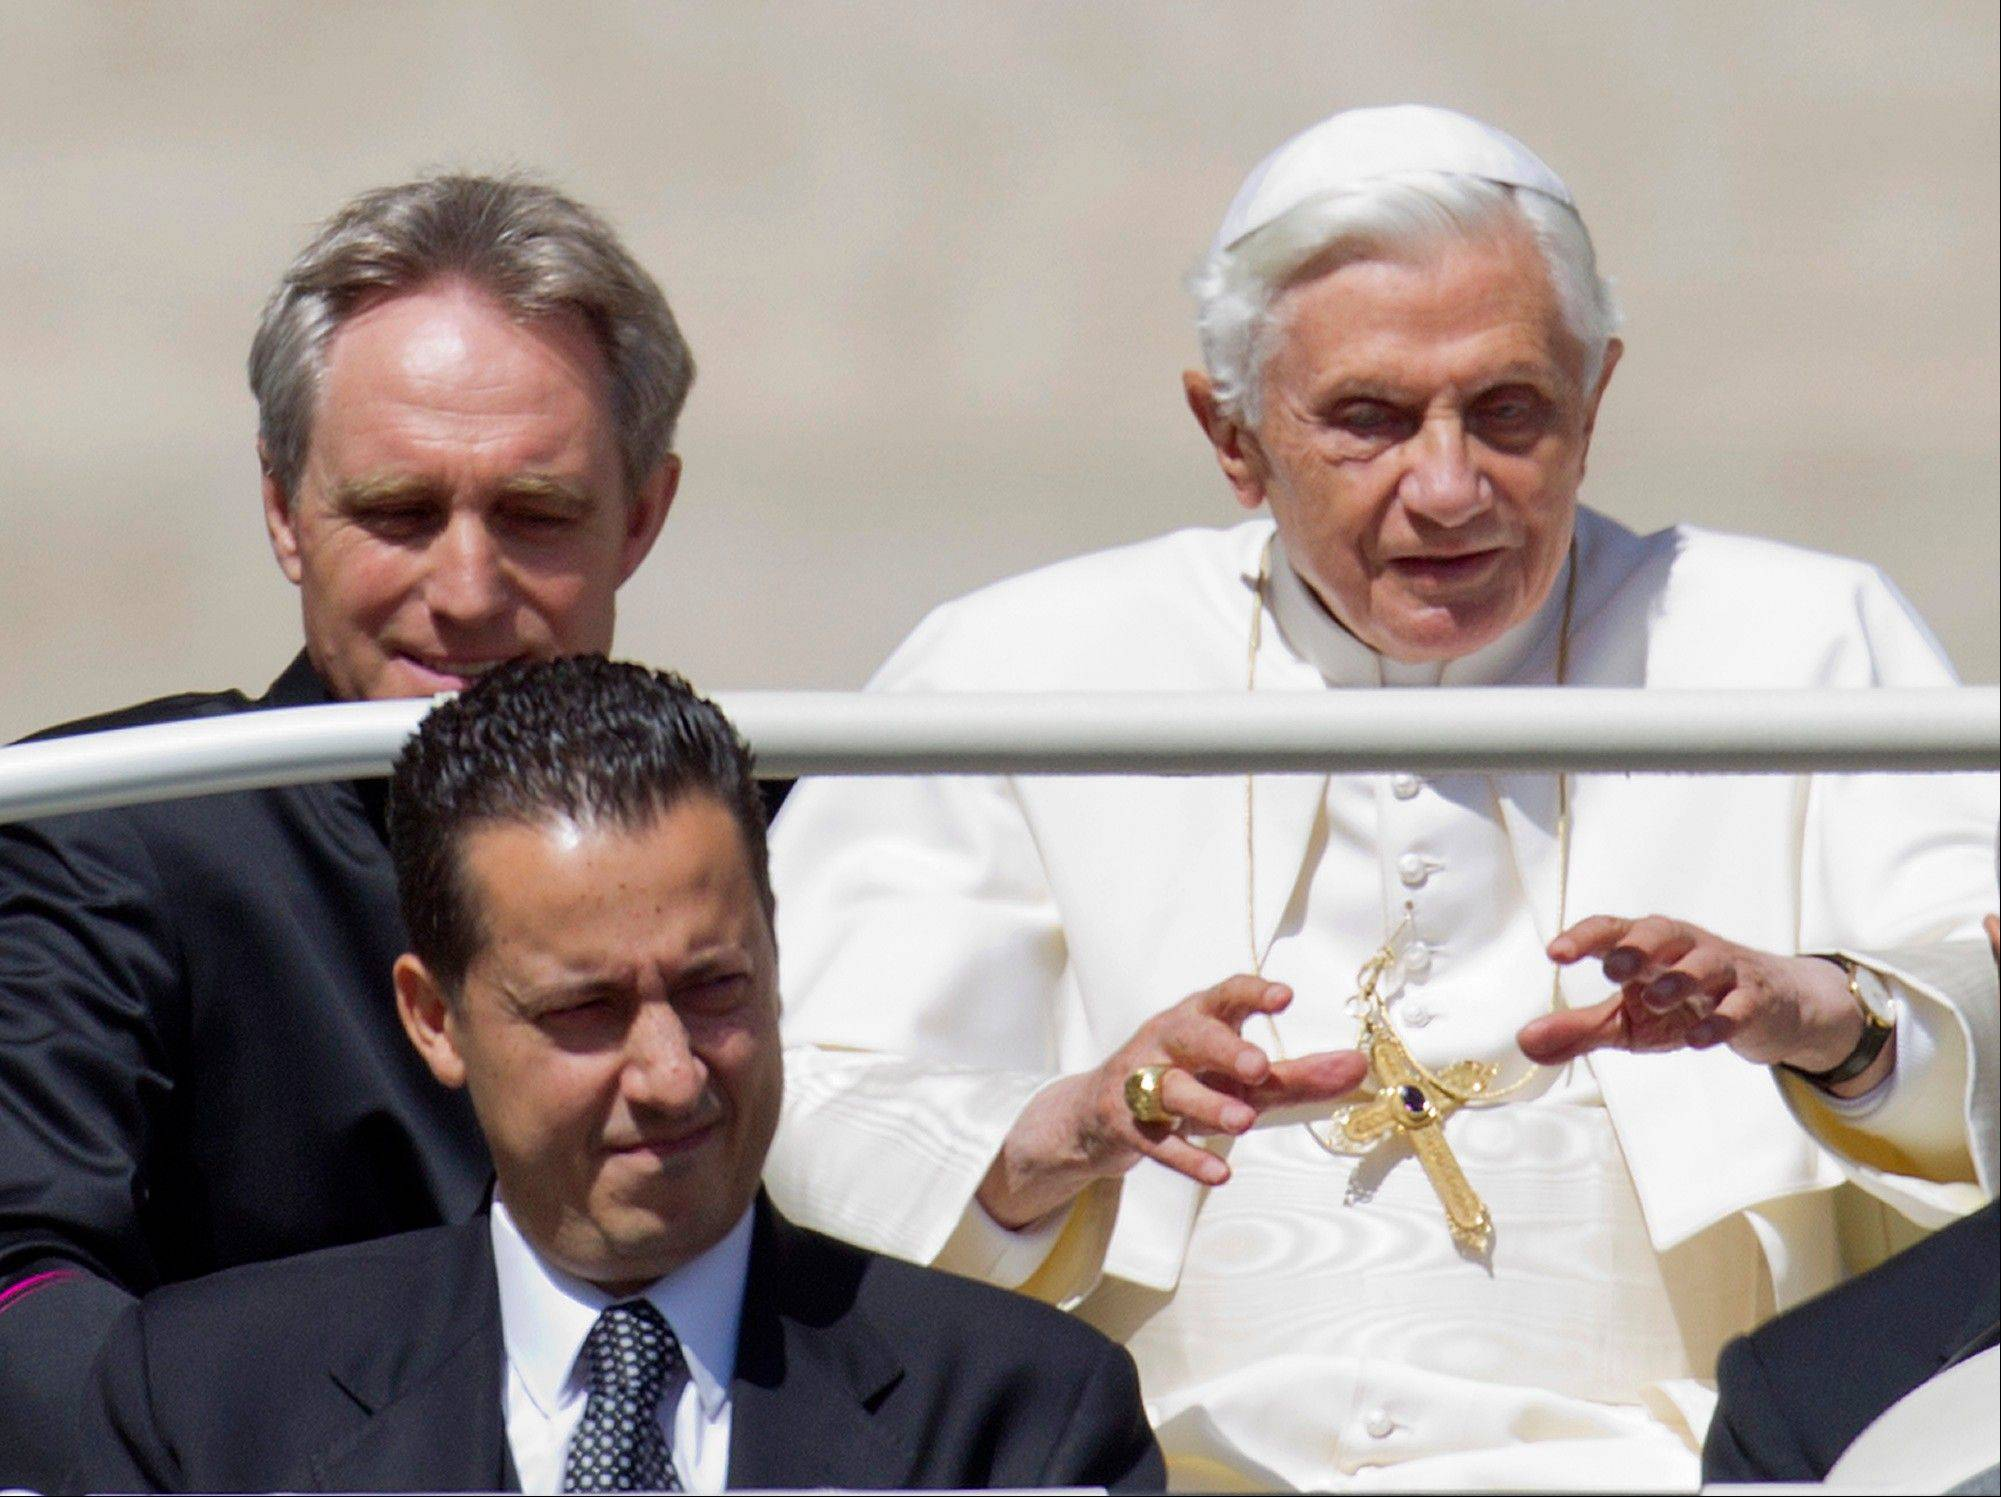 In this May photo, Pope Benedict XVI, flanked by his private secretary Georg Gaenswein, top left, and his butler Paolo Gabiele arrives at St. Peter�s square. A three-judge Vatican tribunal on Saturday will decide whether Paolo Gabriele is guilty of aggravated theft, accused of stealing the pope�s private papers and leaking them to journalist Gianluigi Nuzzi.